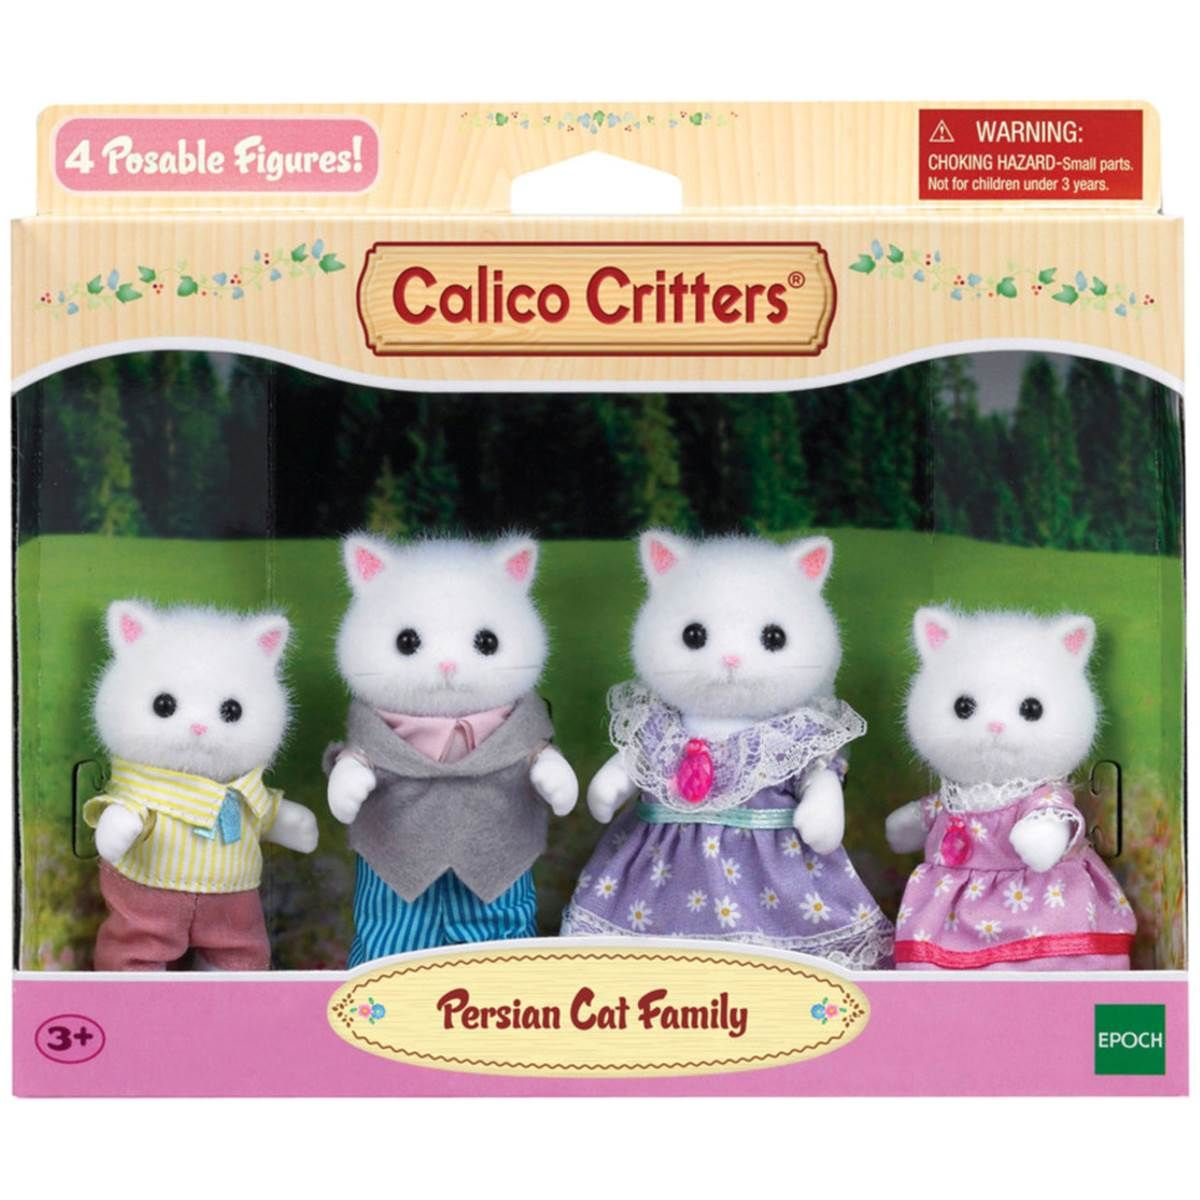 Epoch Everlasting Play Calico Critters Persian Cat Family